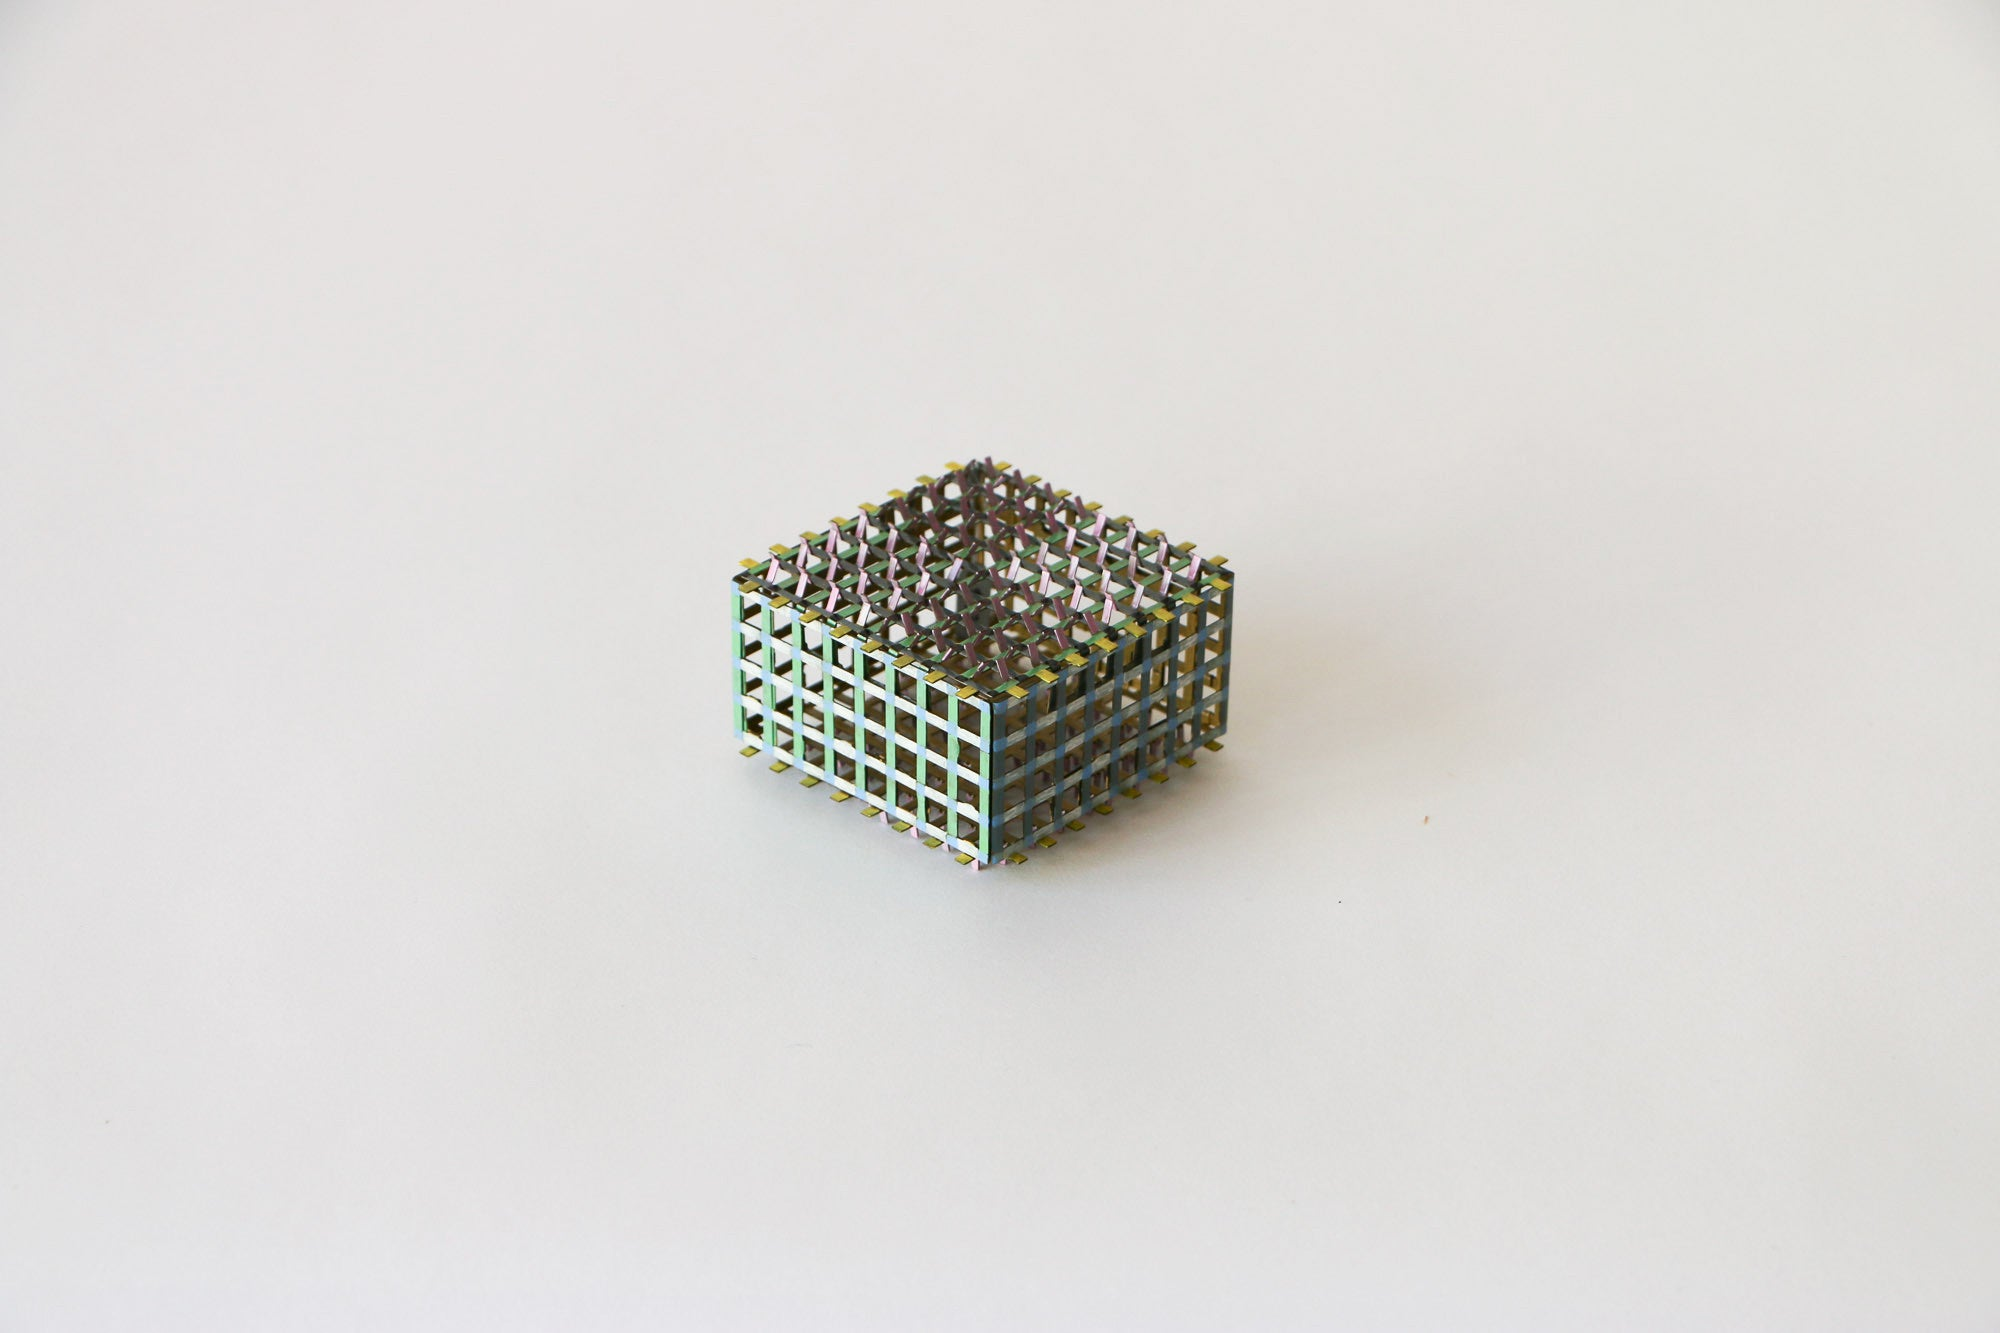 Grid - Container